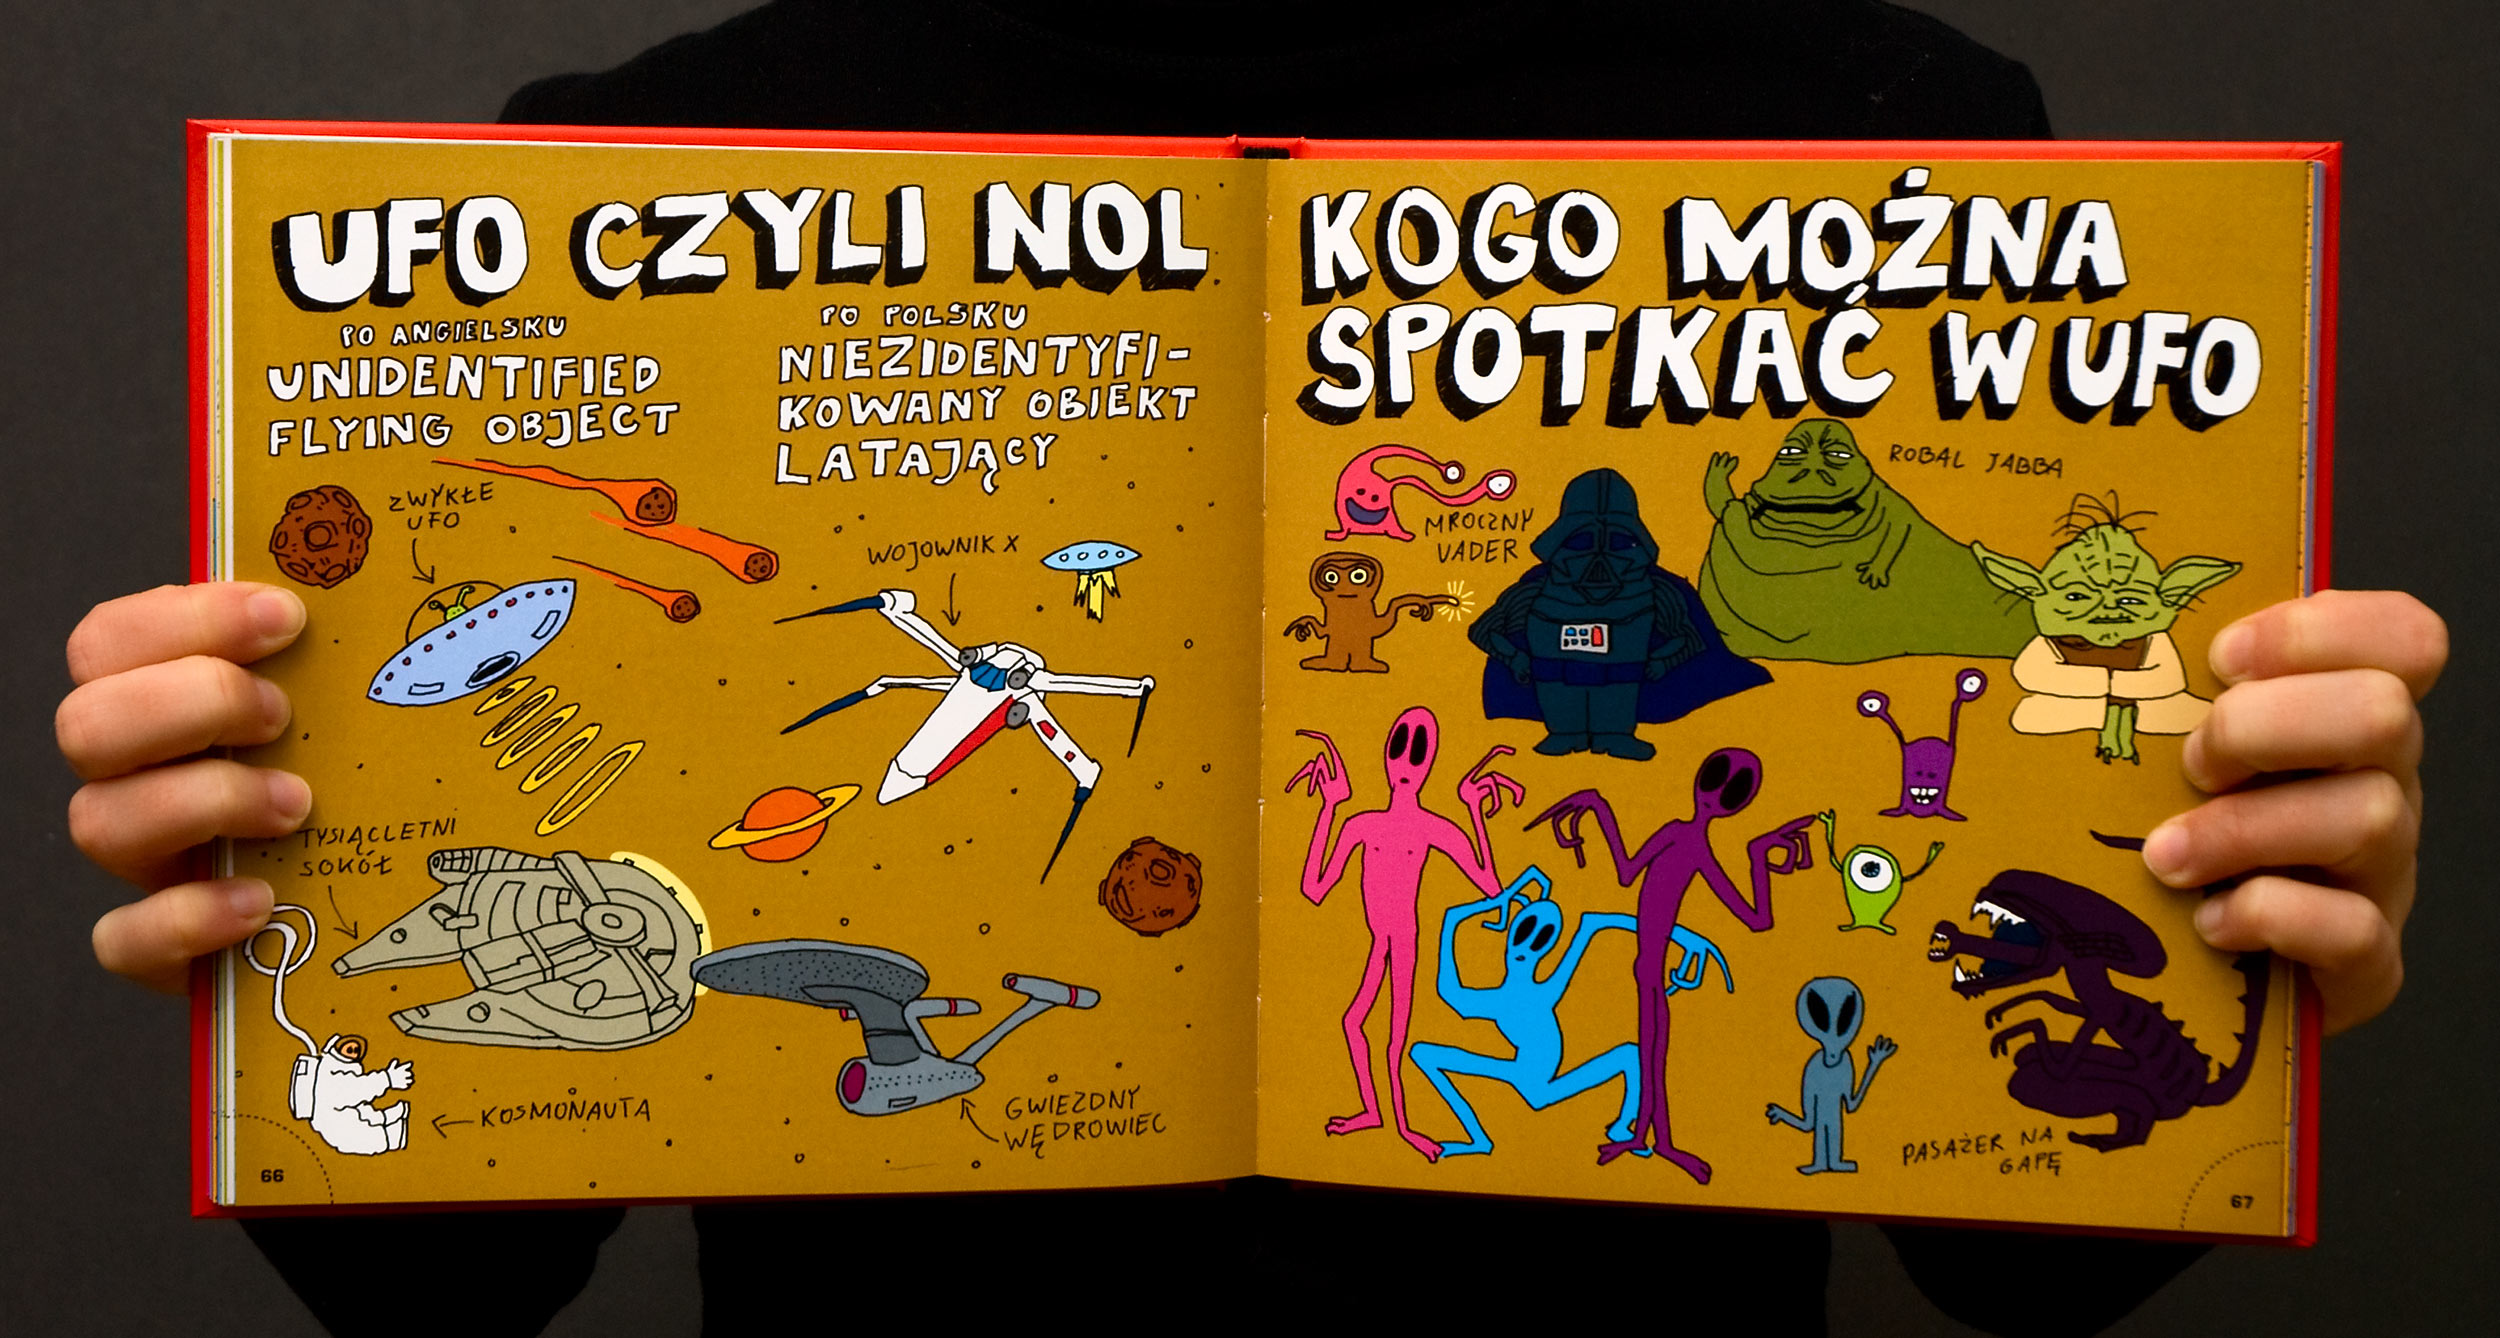 Spread from the original edition.